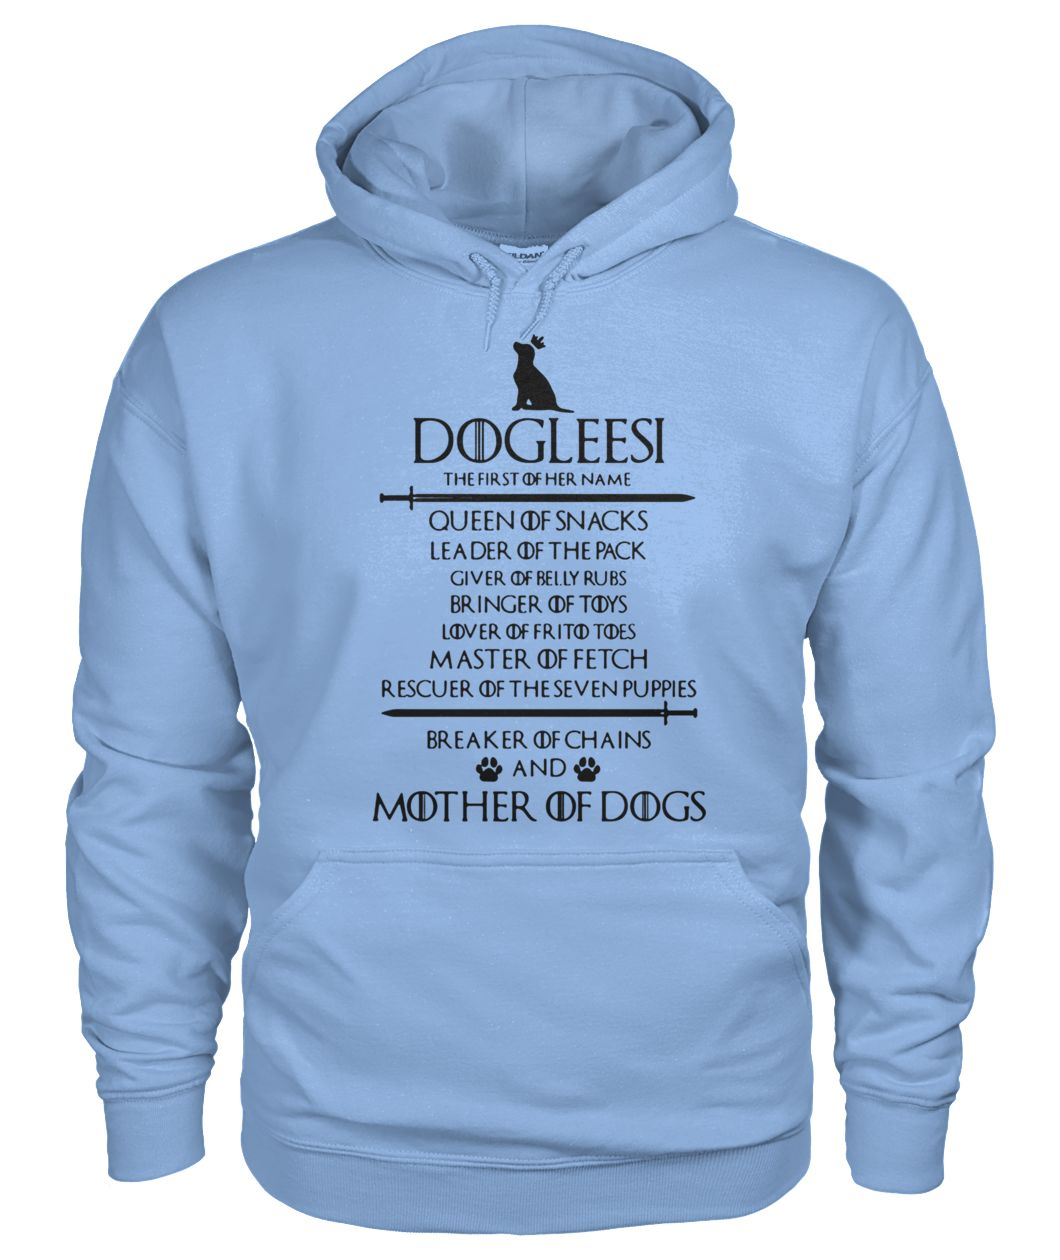 Game of thrones dogleesi the first of her name queen mother of dogs gildan hoodie